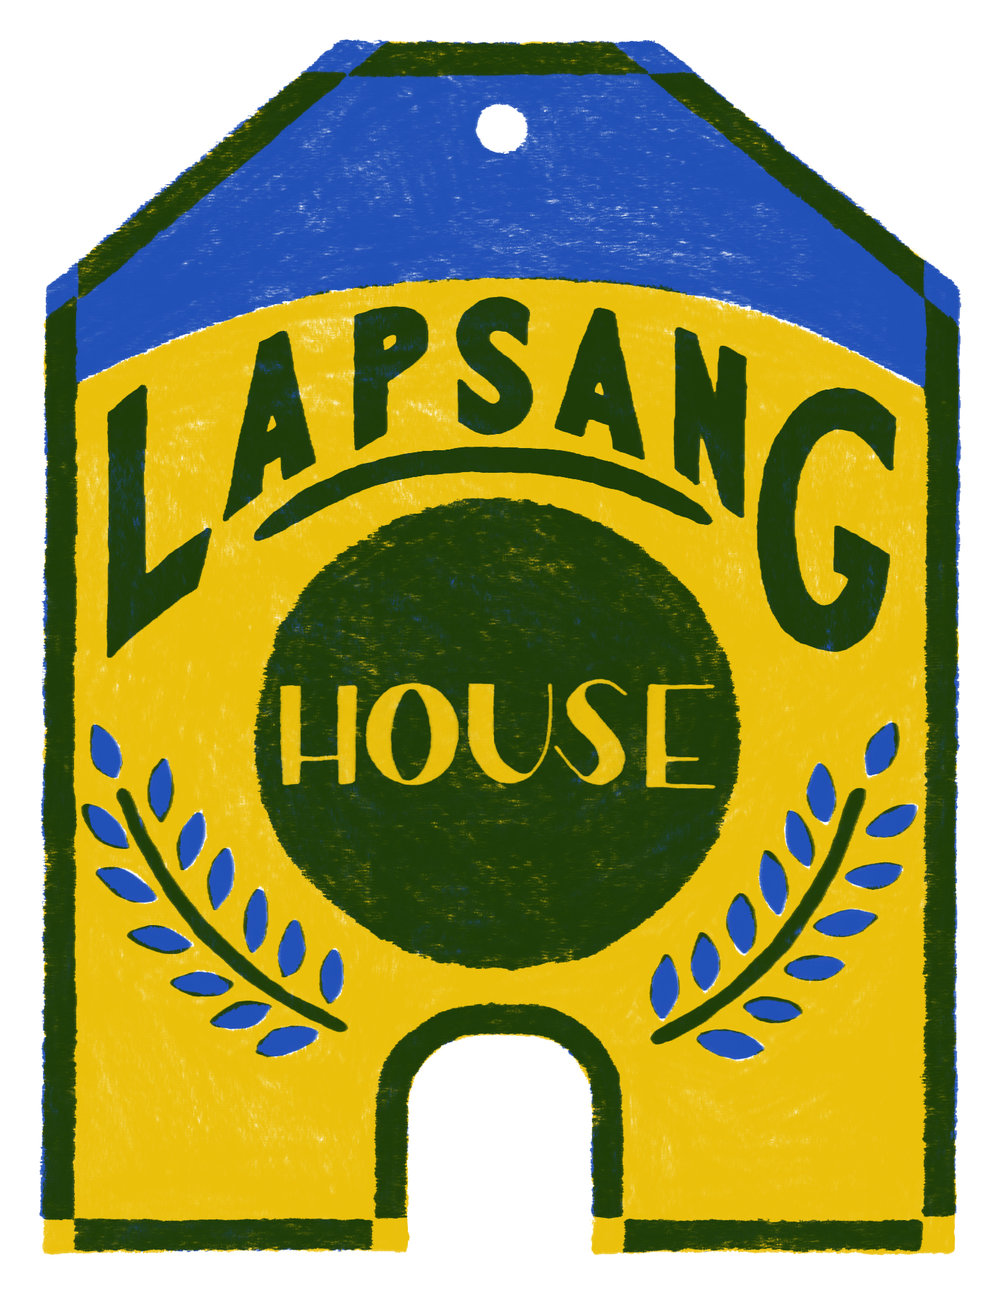 Lapsang House logo_blue and yellow.jpg